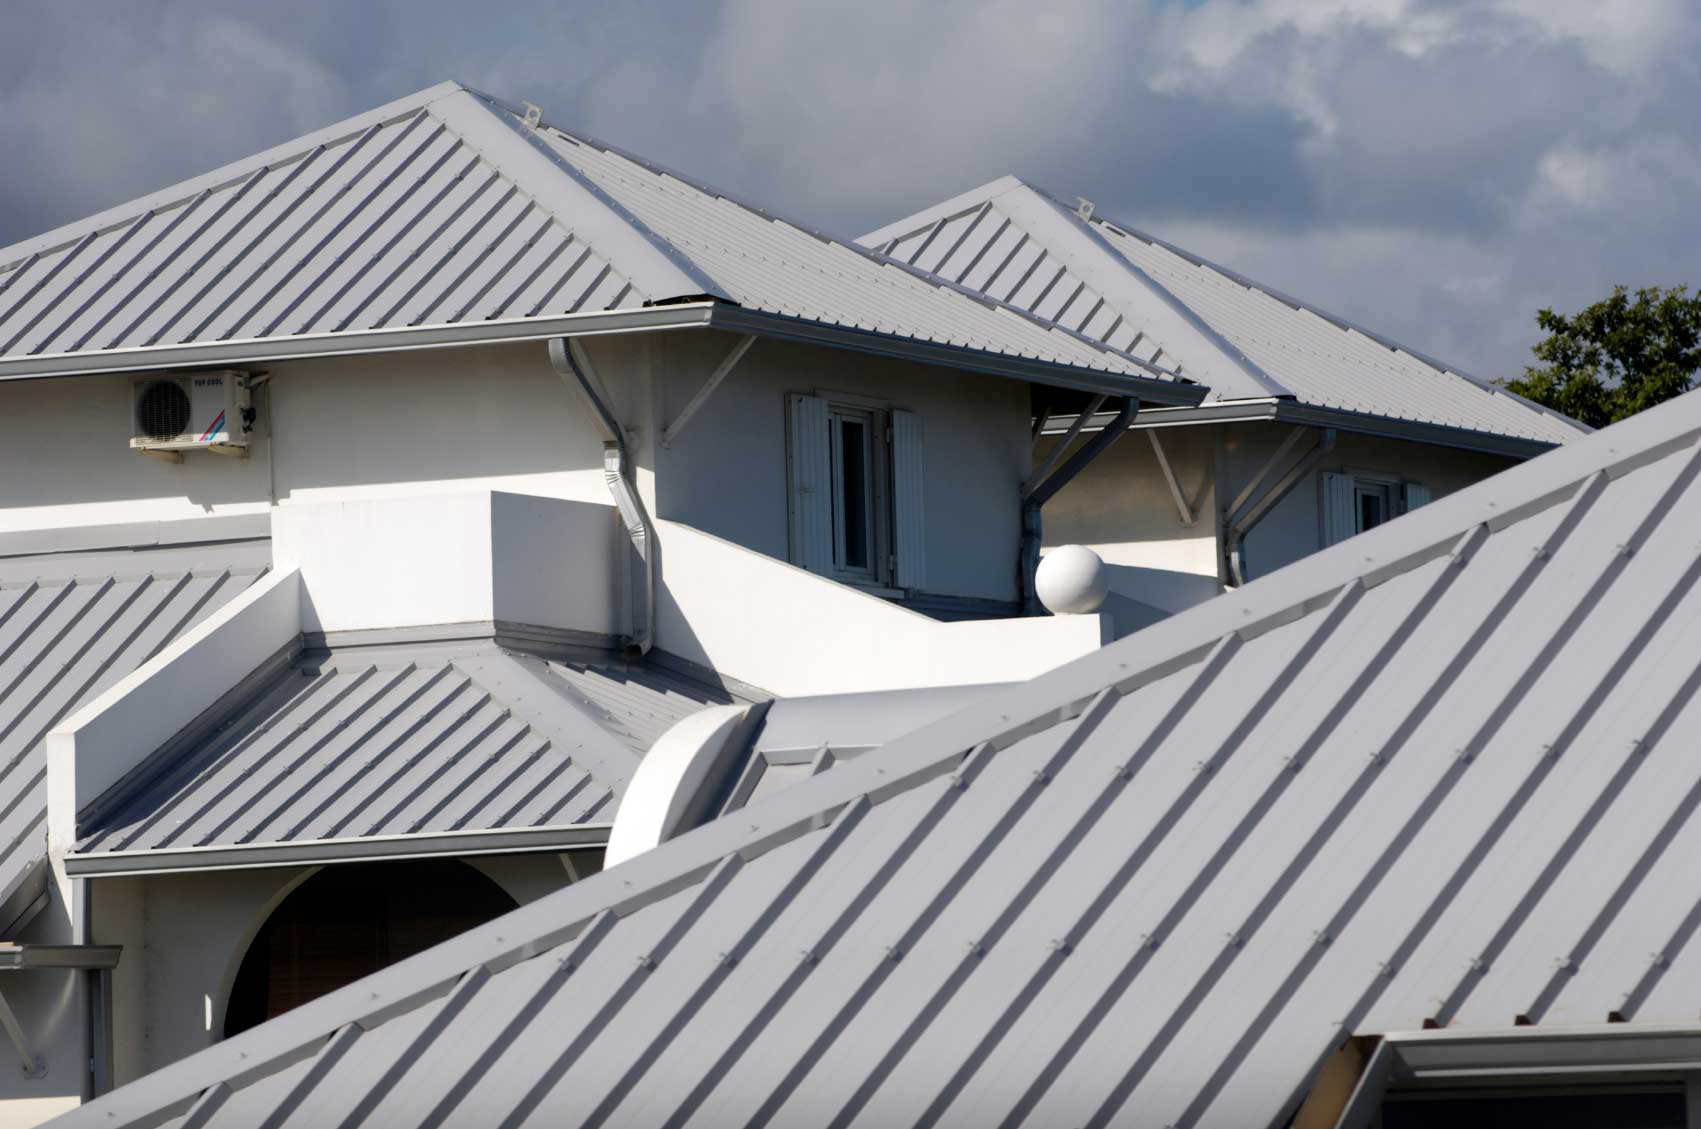 Metal Roofing - C&D Roofing and Reconstruction